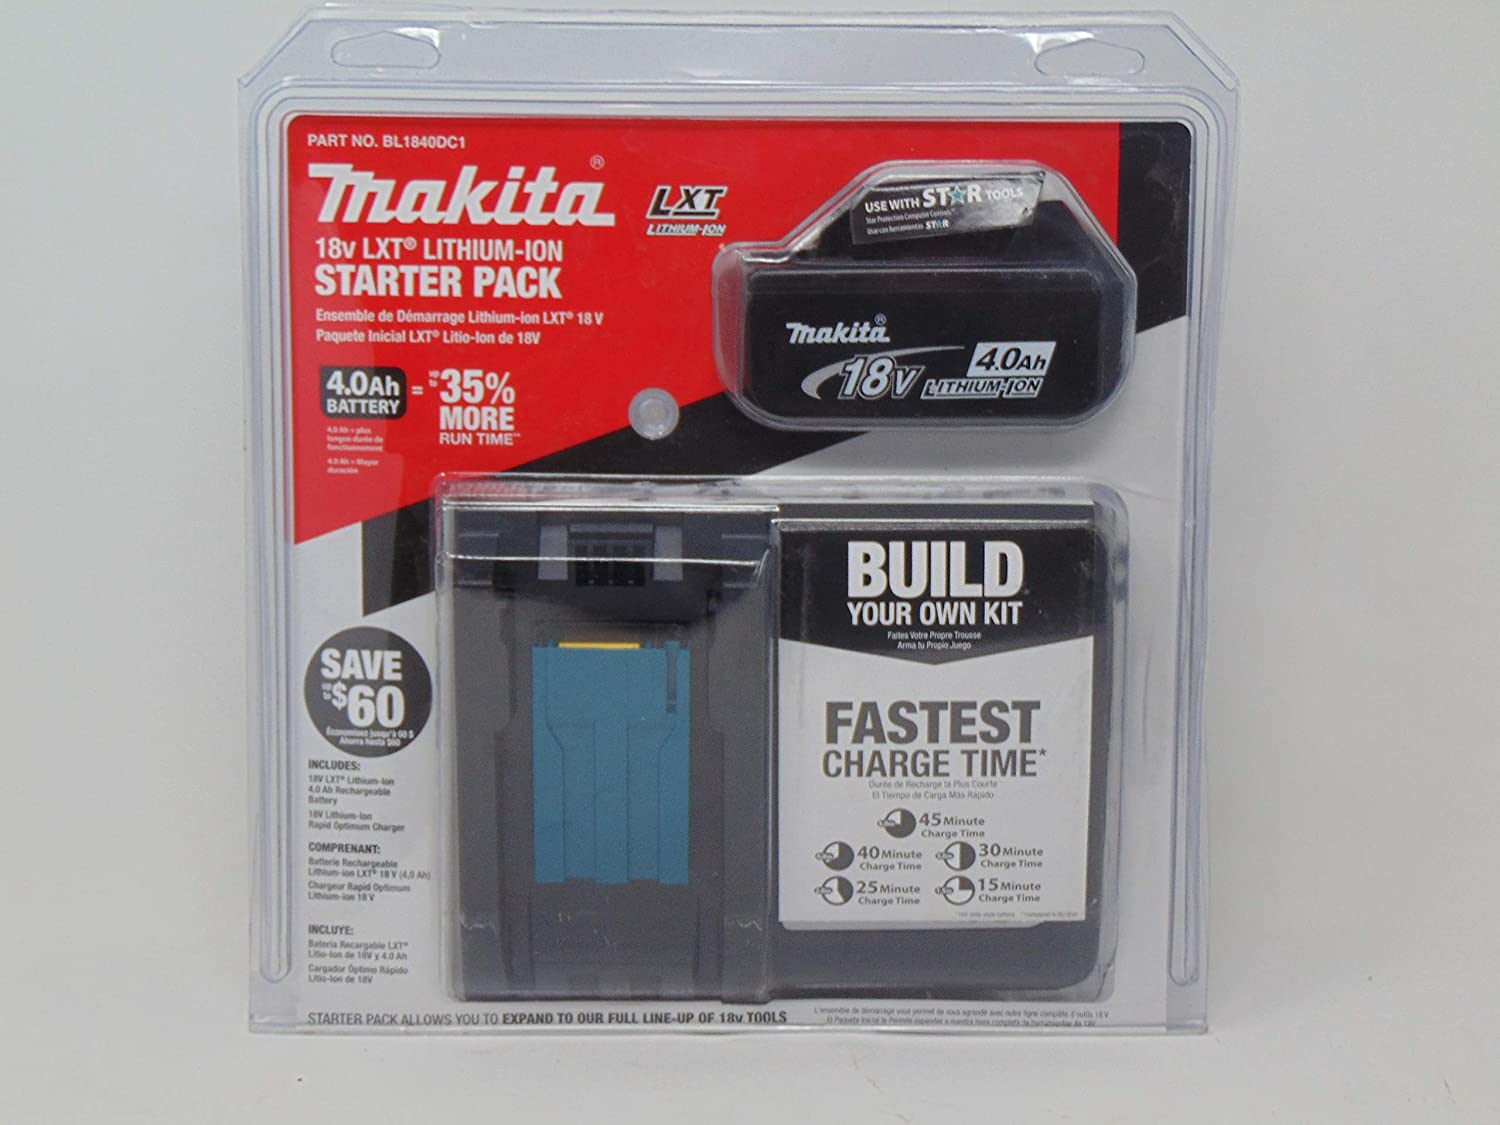 Makita BL1840DC1 Fort Worth Mall 18V LXT Lithium-Ion Branded goods Starter Charger and Battery